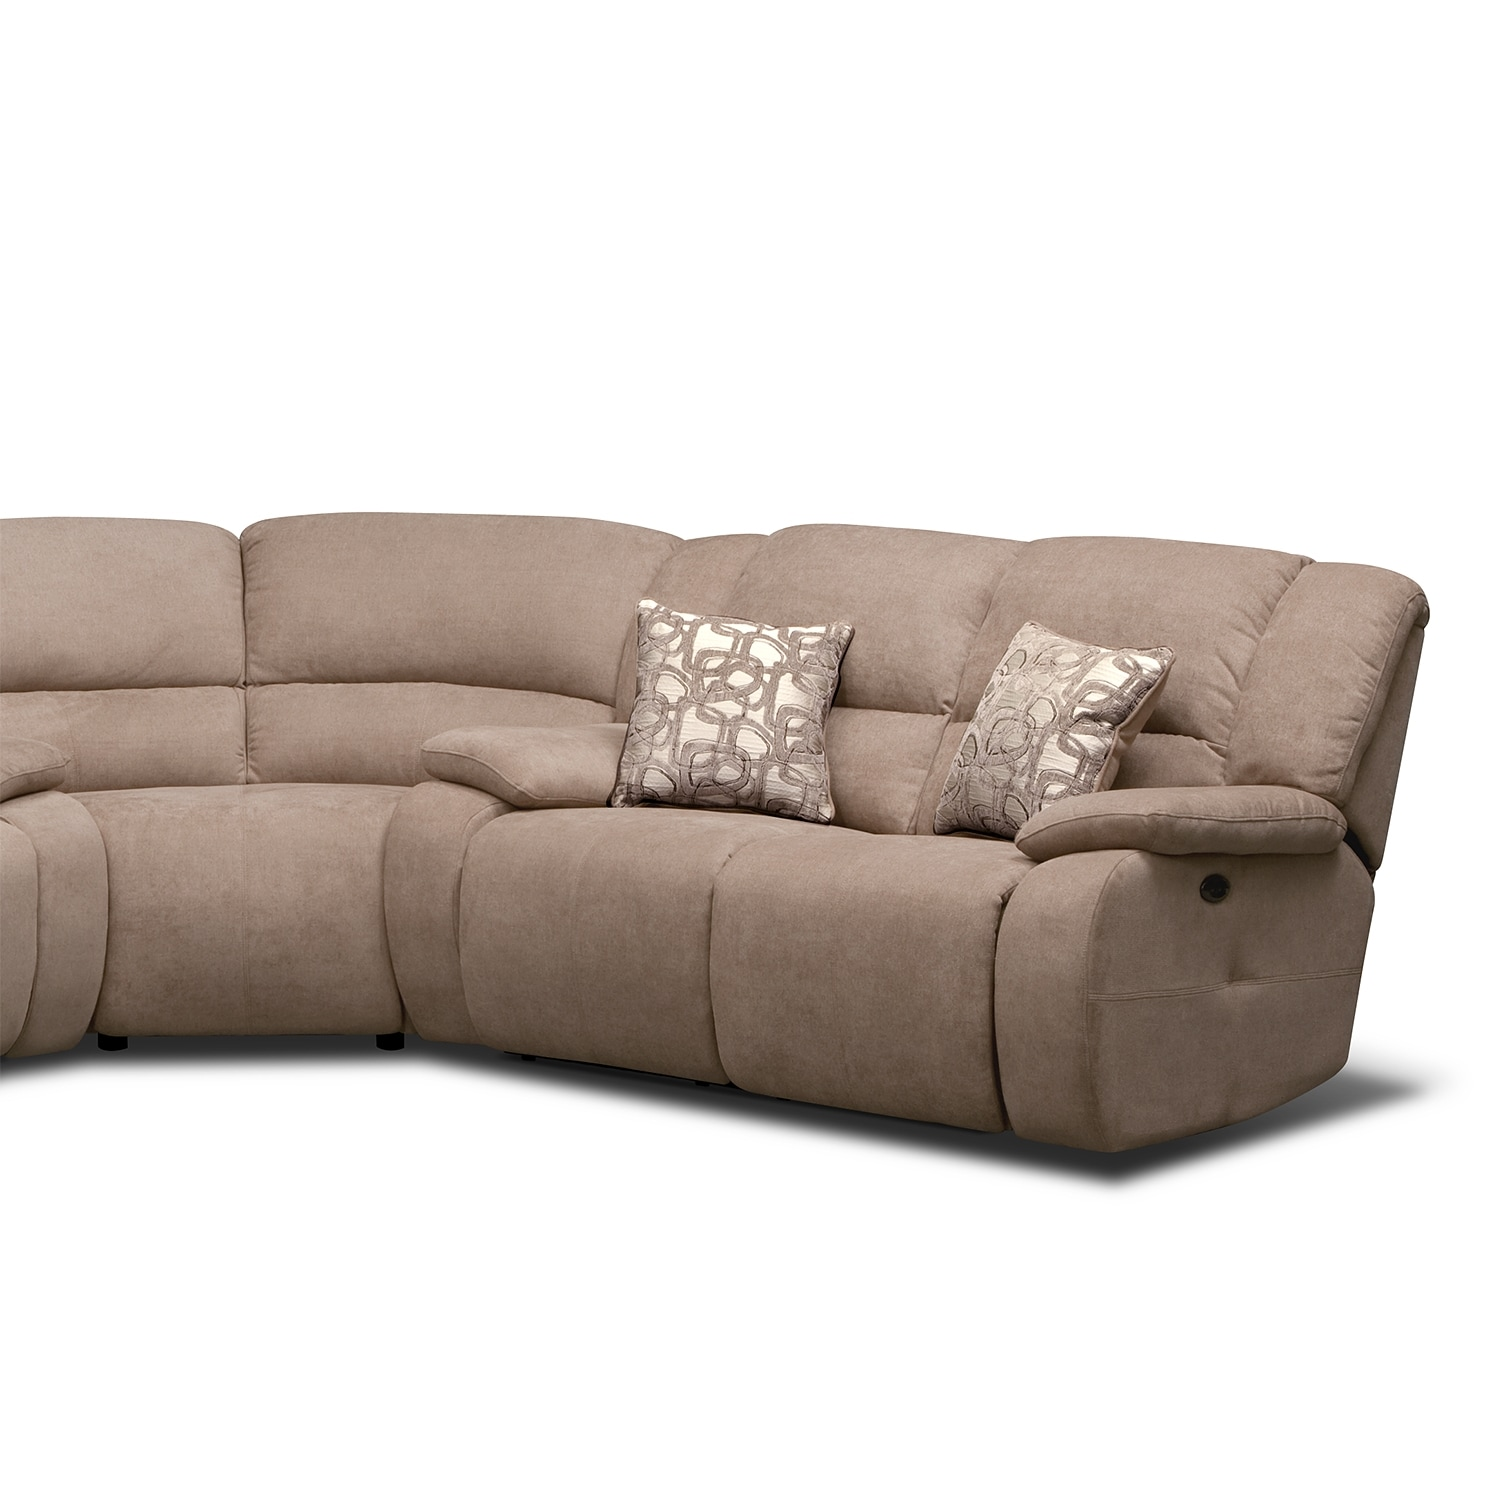 justin ii fabric reclining sectional sofa the most comfortable sleeper fortuna beige 3 pc power